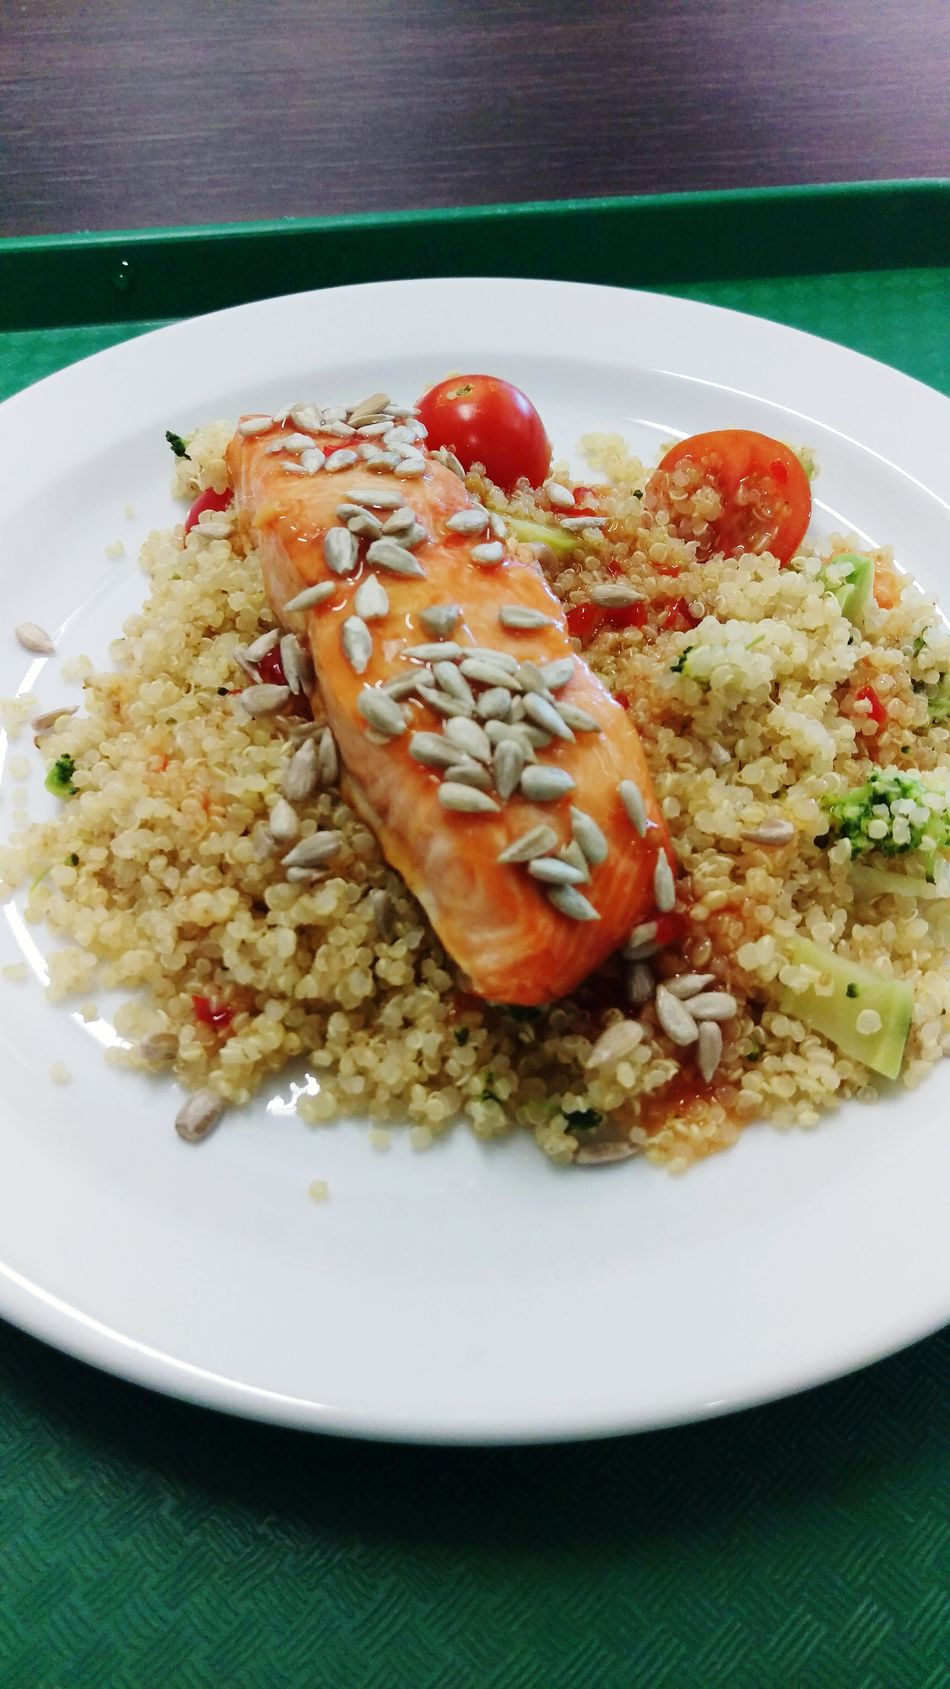 Plate Ready-to-eat Food Close-up No People Freshness Food And Drink Serving Size Meal Table Indoors  Fried Rice Salmondish Salmon Dinner Salmon Dish Healthy Eating Seeds Seeds, Nutrition, Food, Health, Healthy, Oil, Sunflower Oil